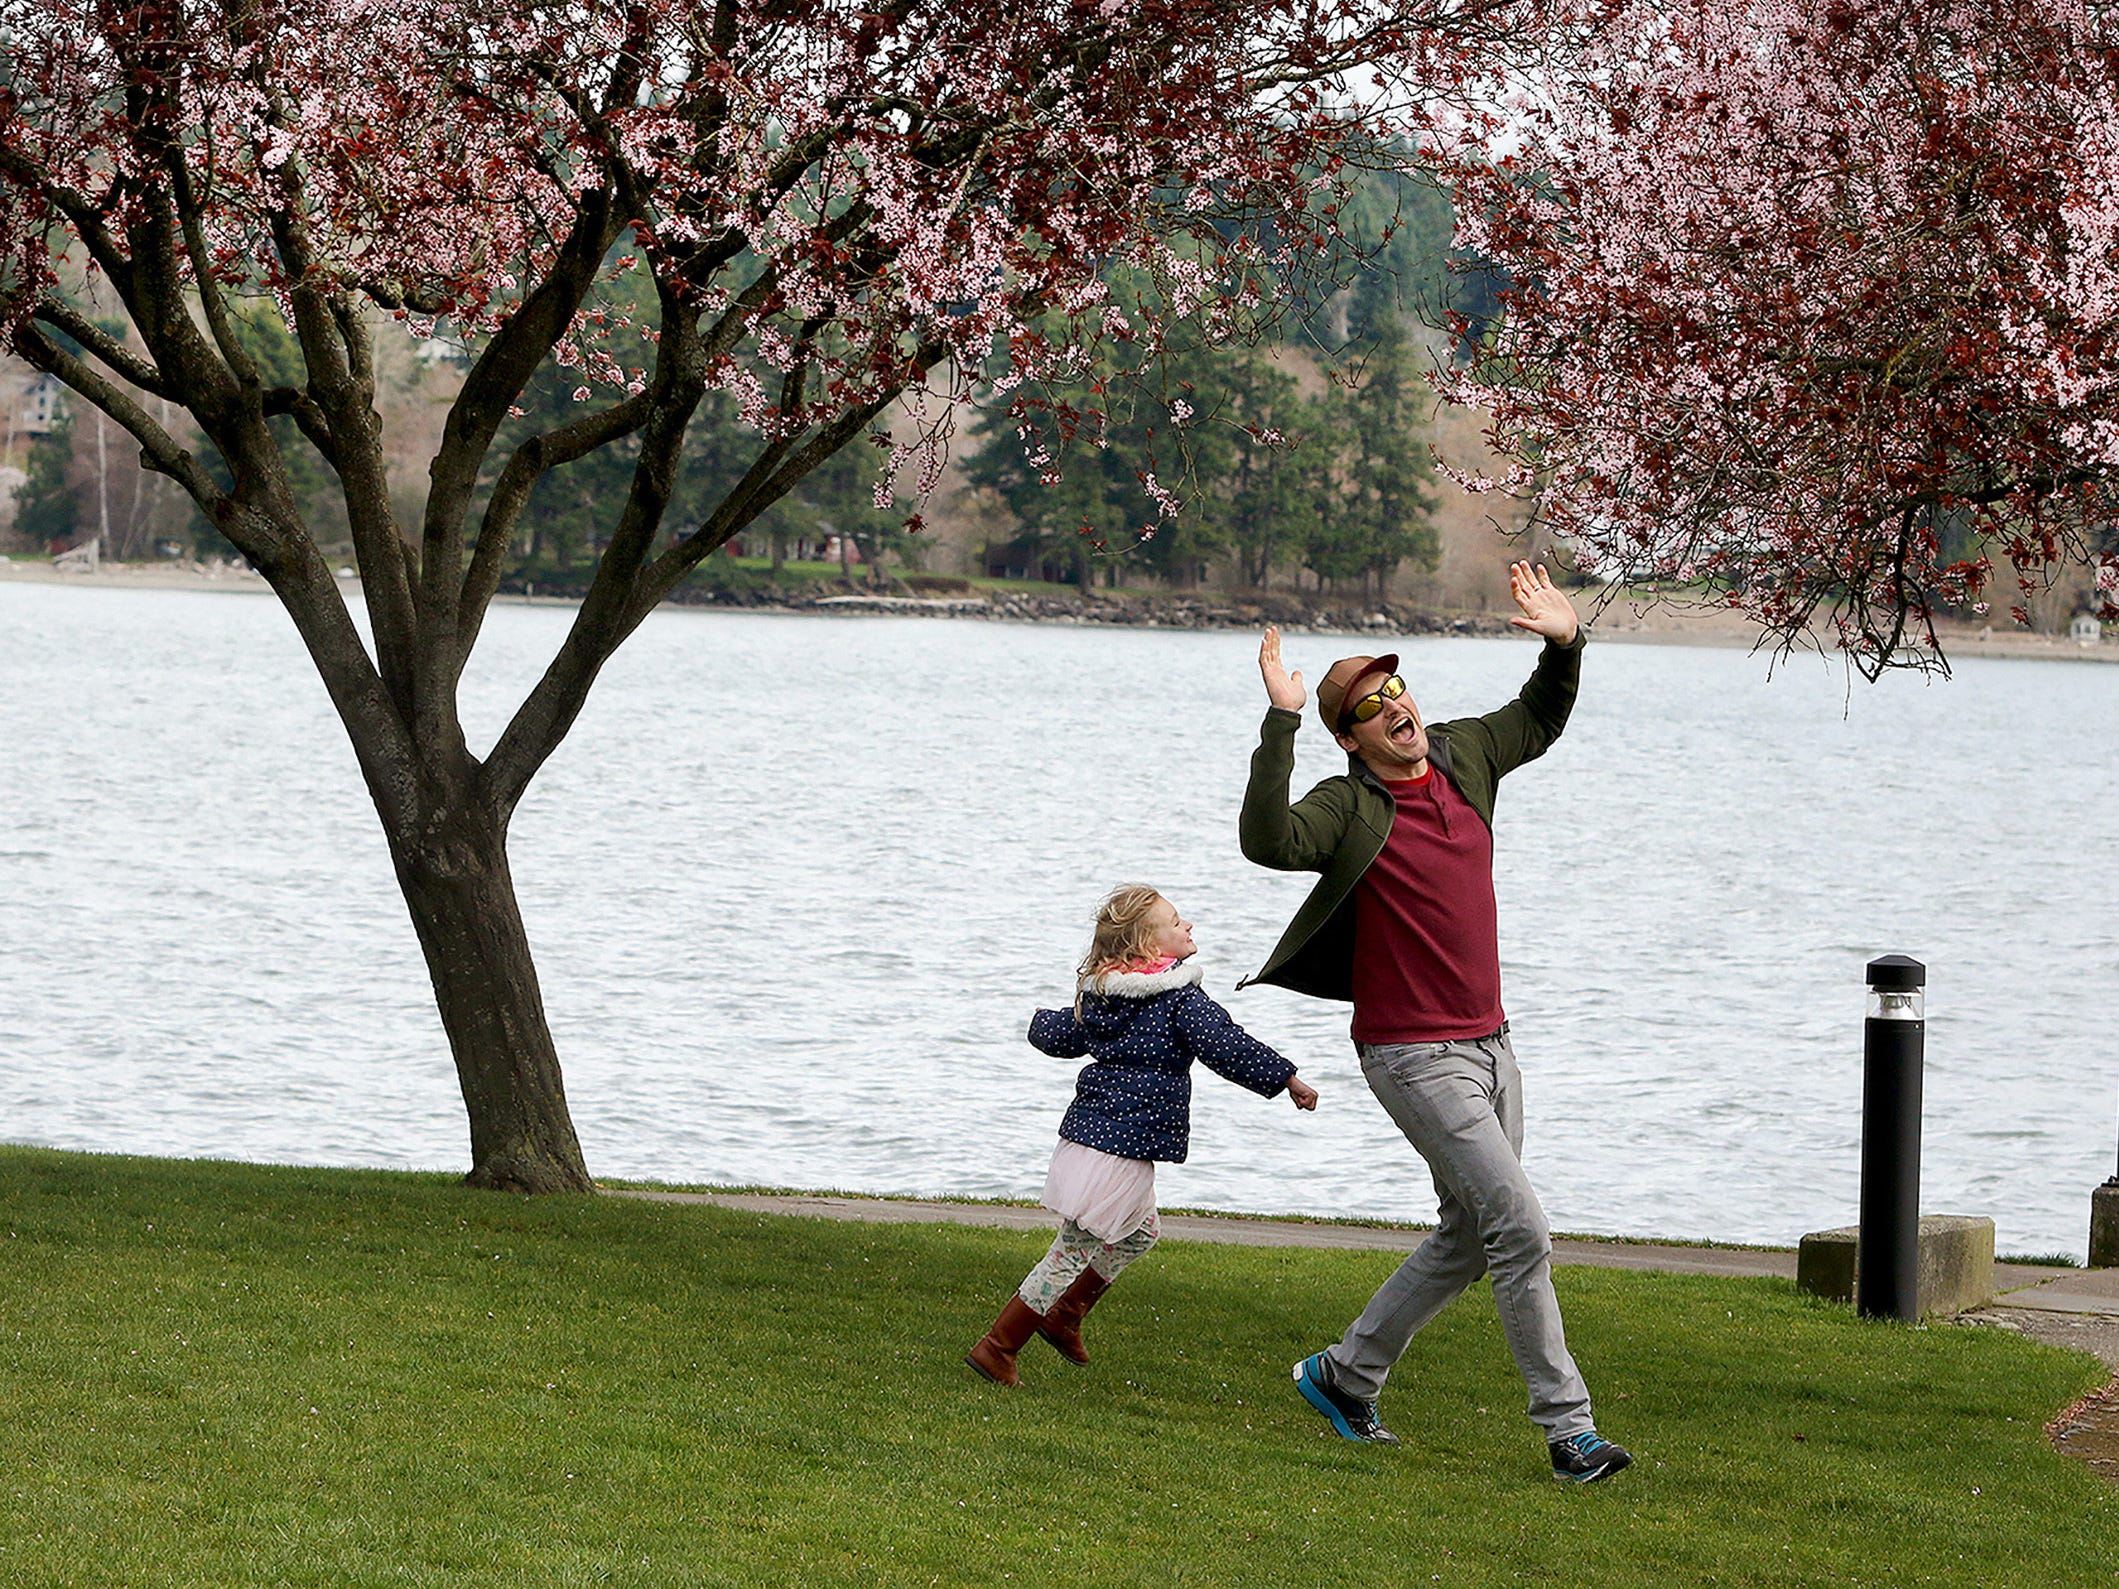 Kip Dambacher of Seabeck reacts after getting caught by his daughter Hadley, 4, in a game of tag under the spring blossoms at Silverdale Waterfront Park on Tuesday March 27, 2018.